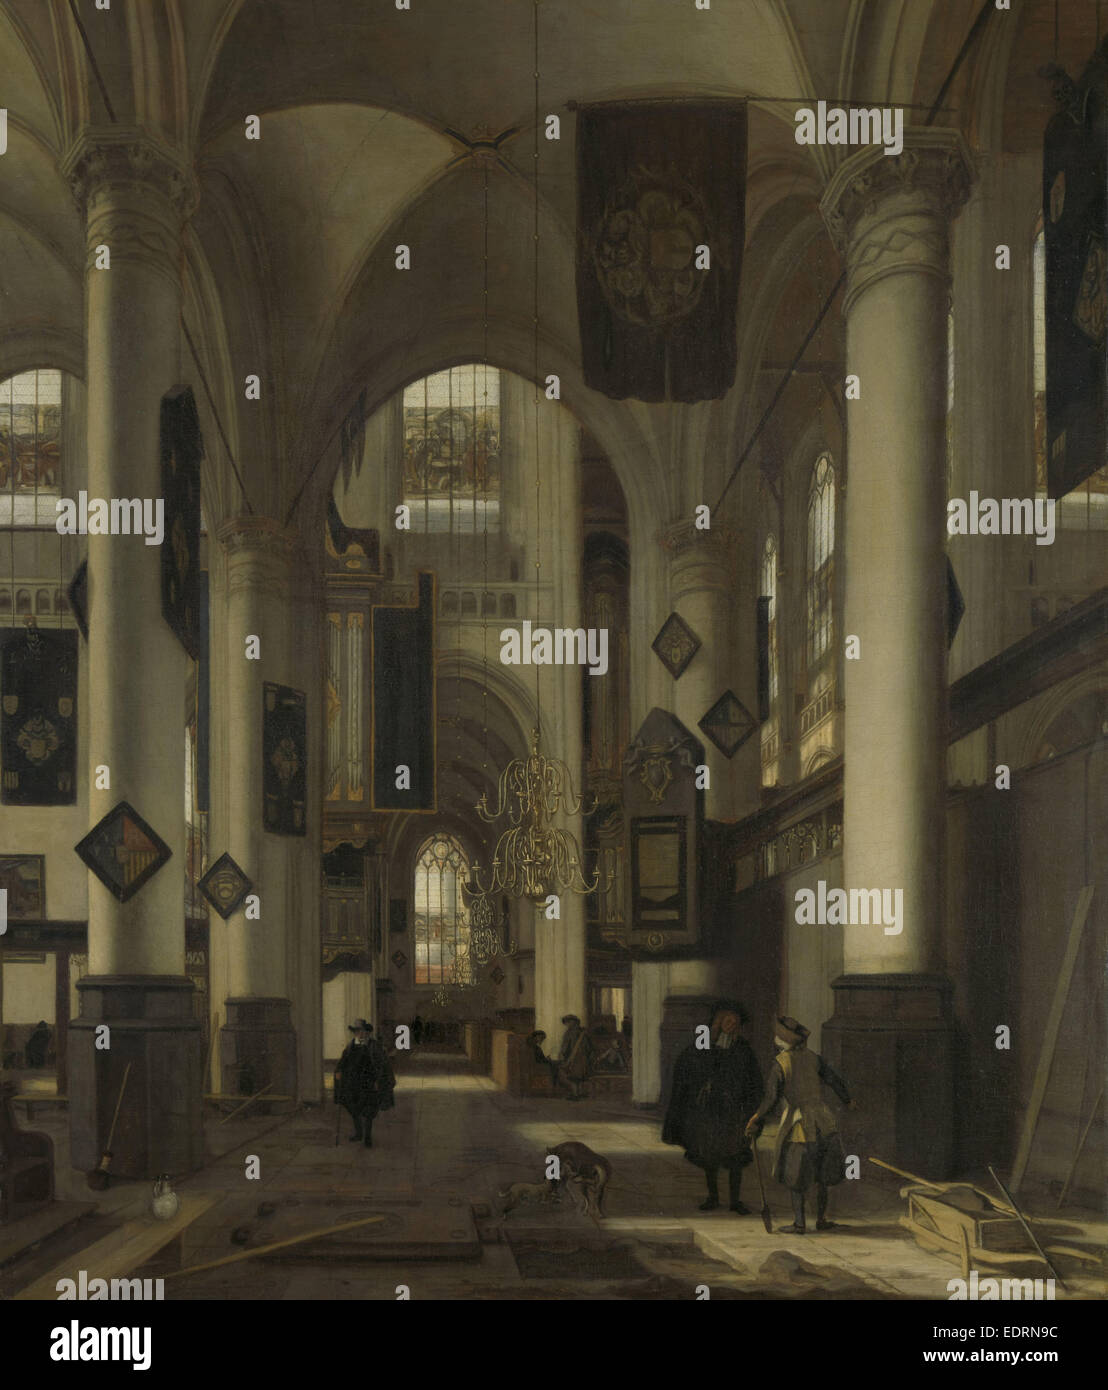 Interior of a Protestant Gothic Church with Motifs from the Oude and Nieuwe Kerk in Amsterdam, The Netherlands, - Stock Image